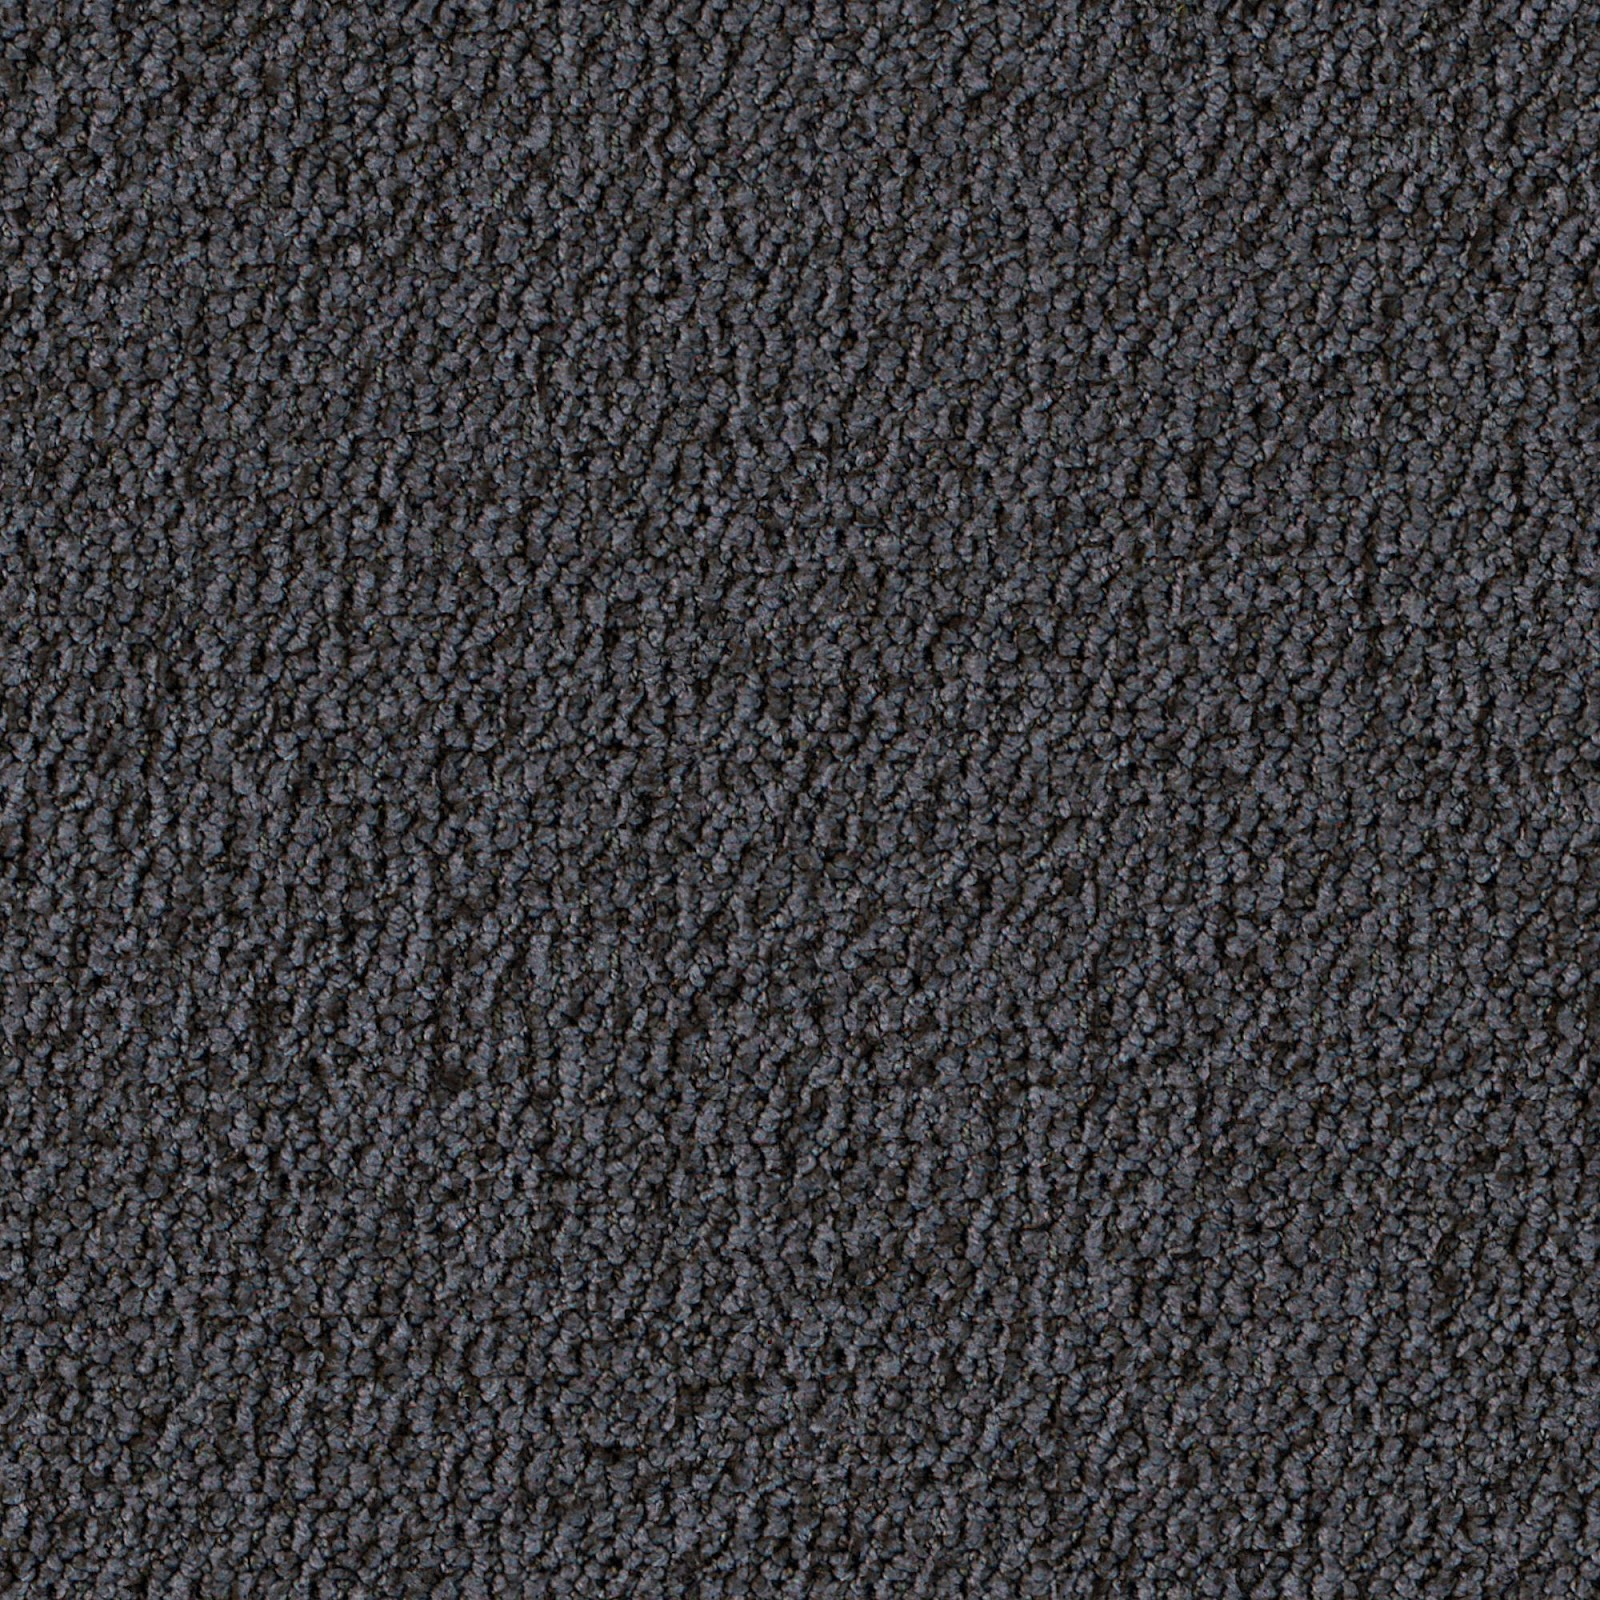 High Resolution Seamless Textures Free Seamless Fabric